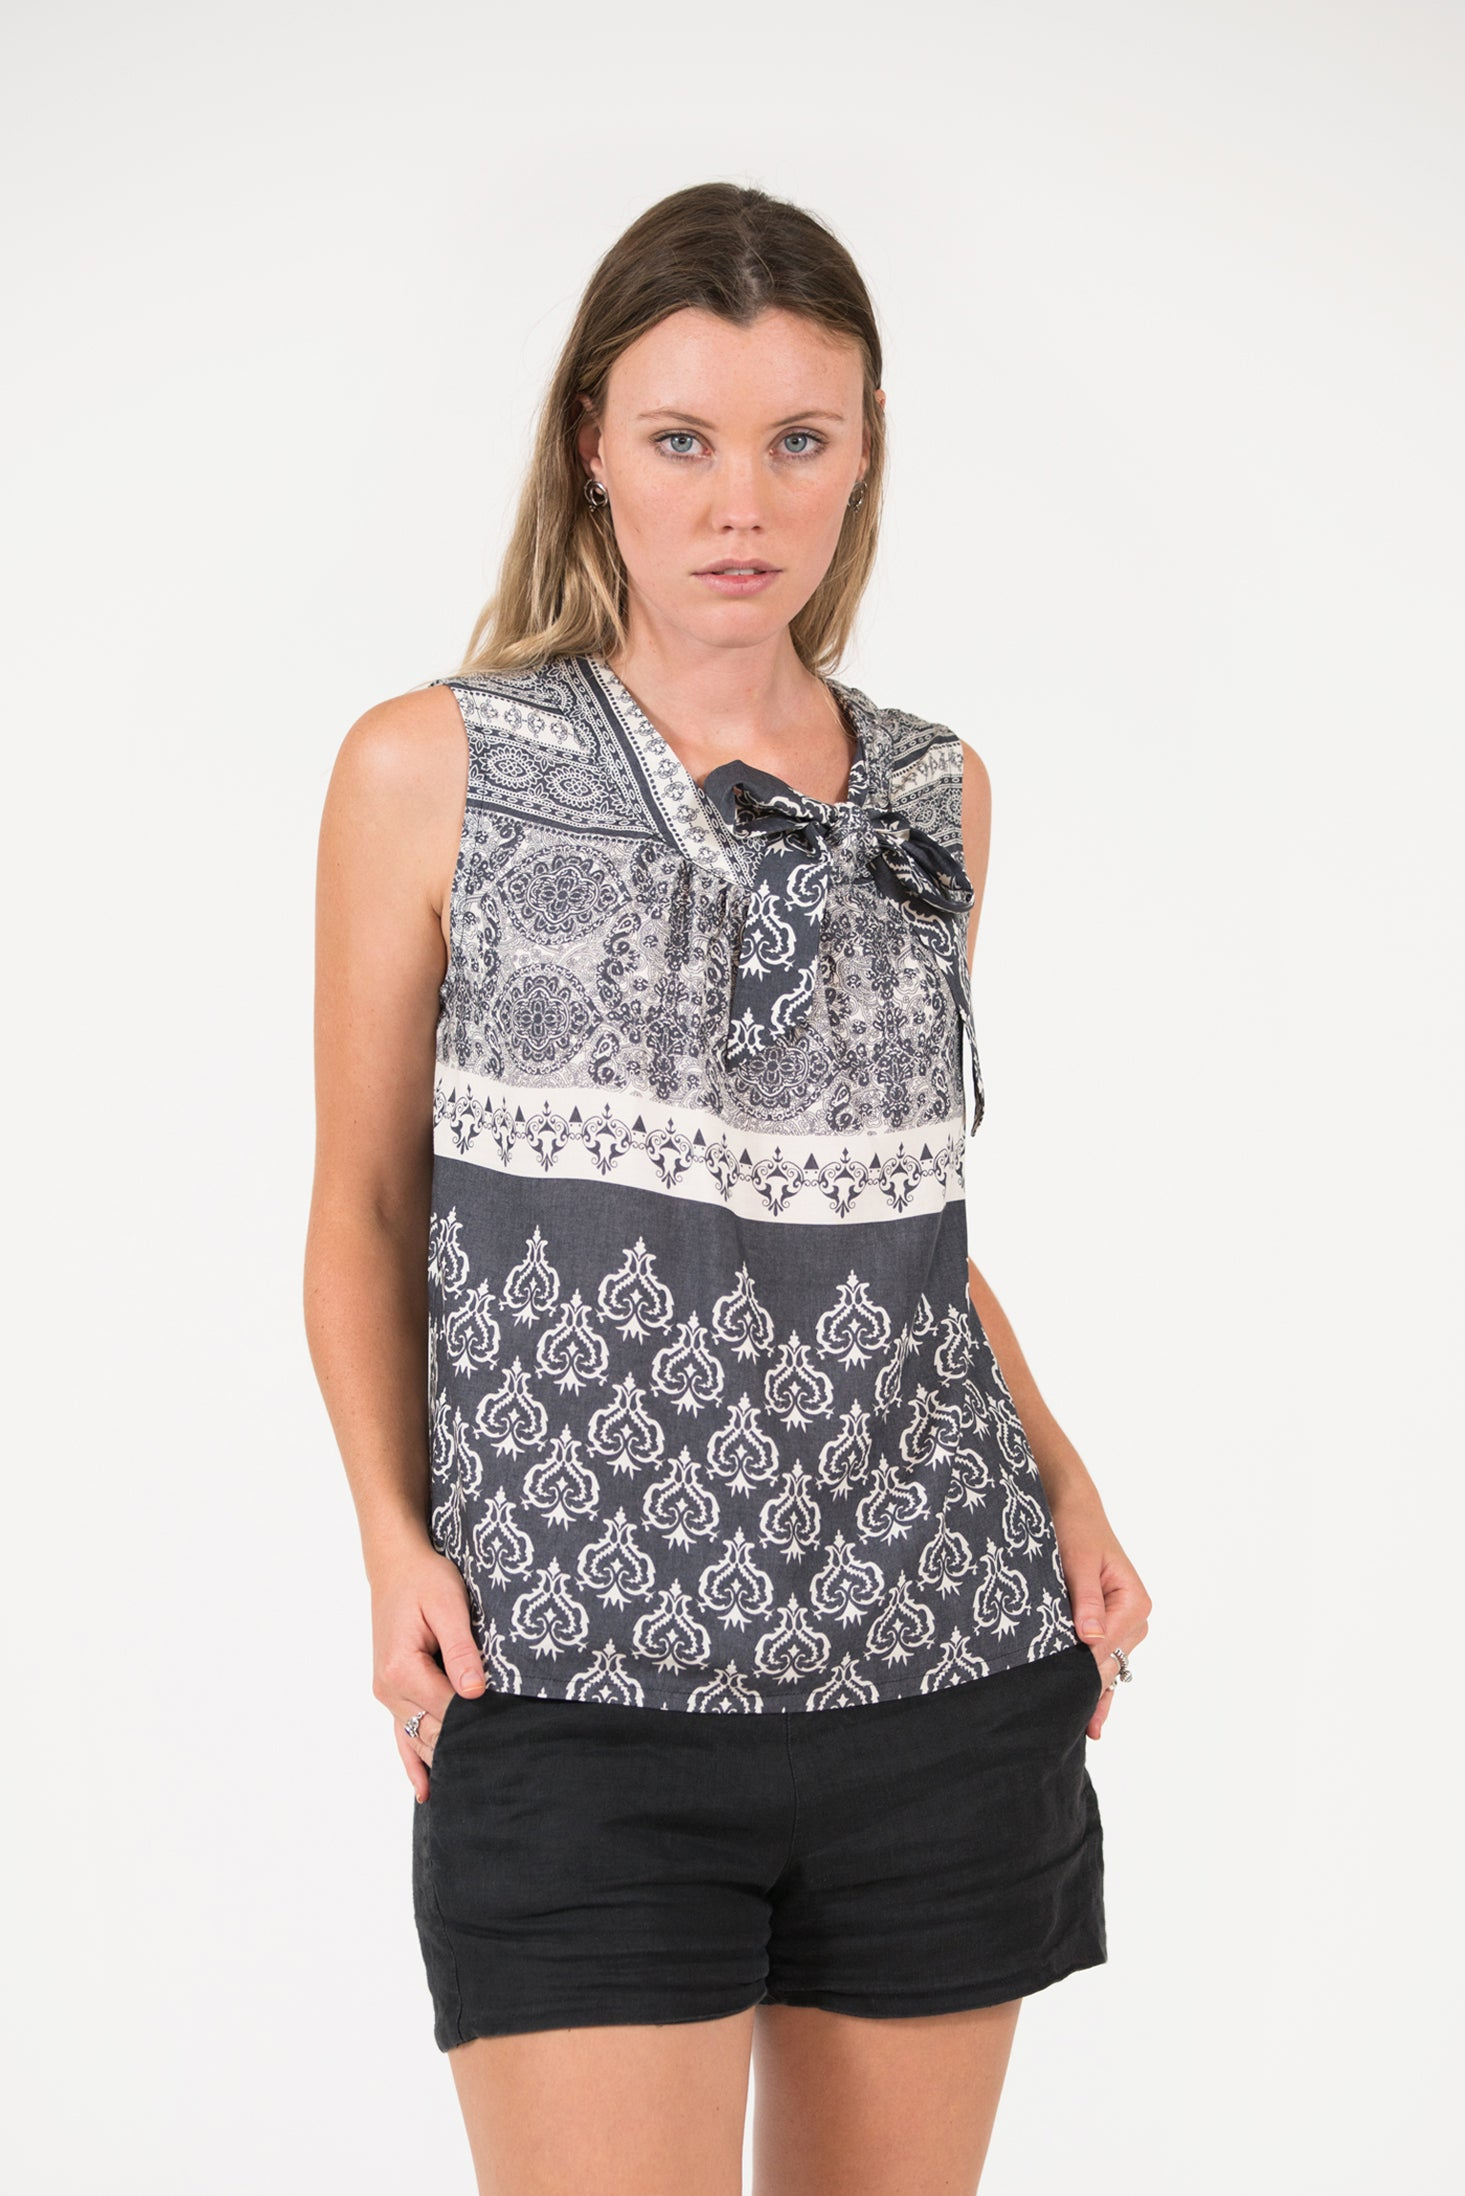 Greyscale heart printed Bowline sleeveless top with tie at neck